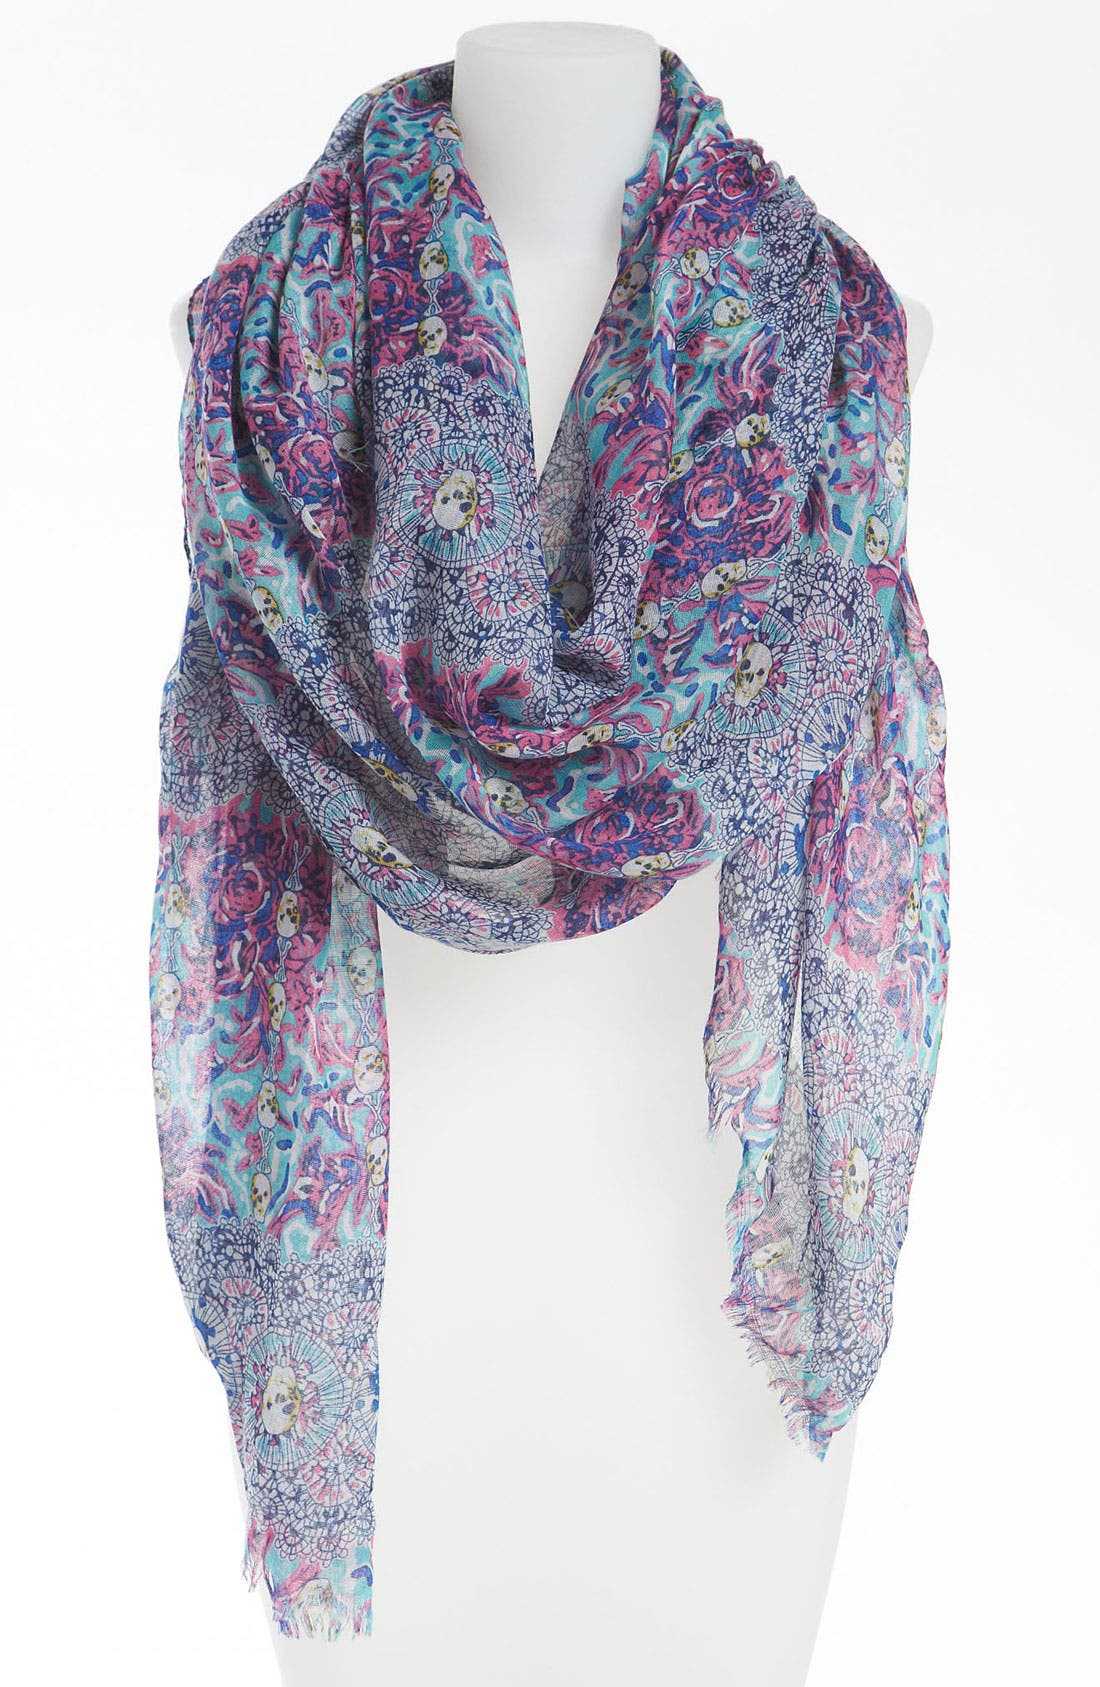 Main Image - BP. Skull Print Sheer Scarf